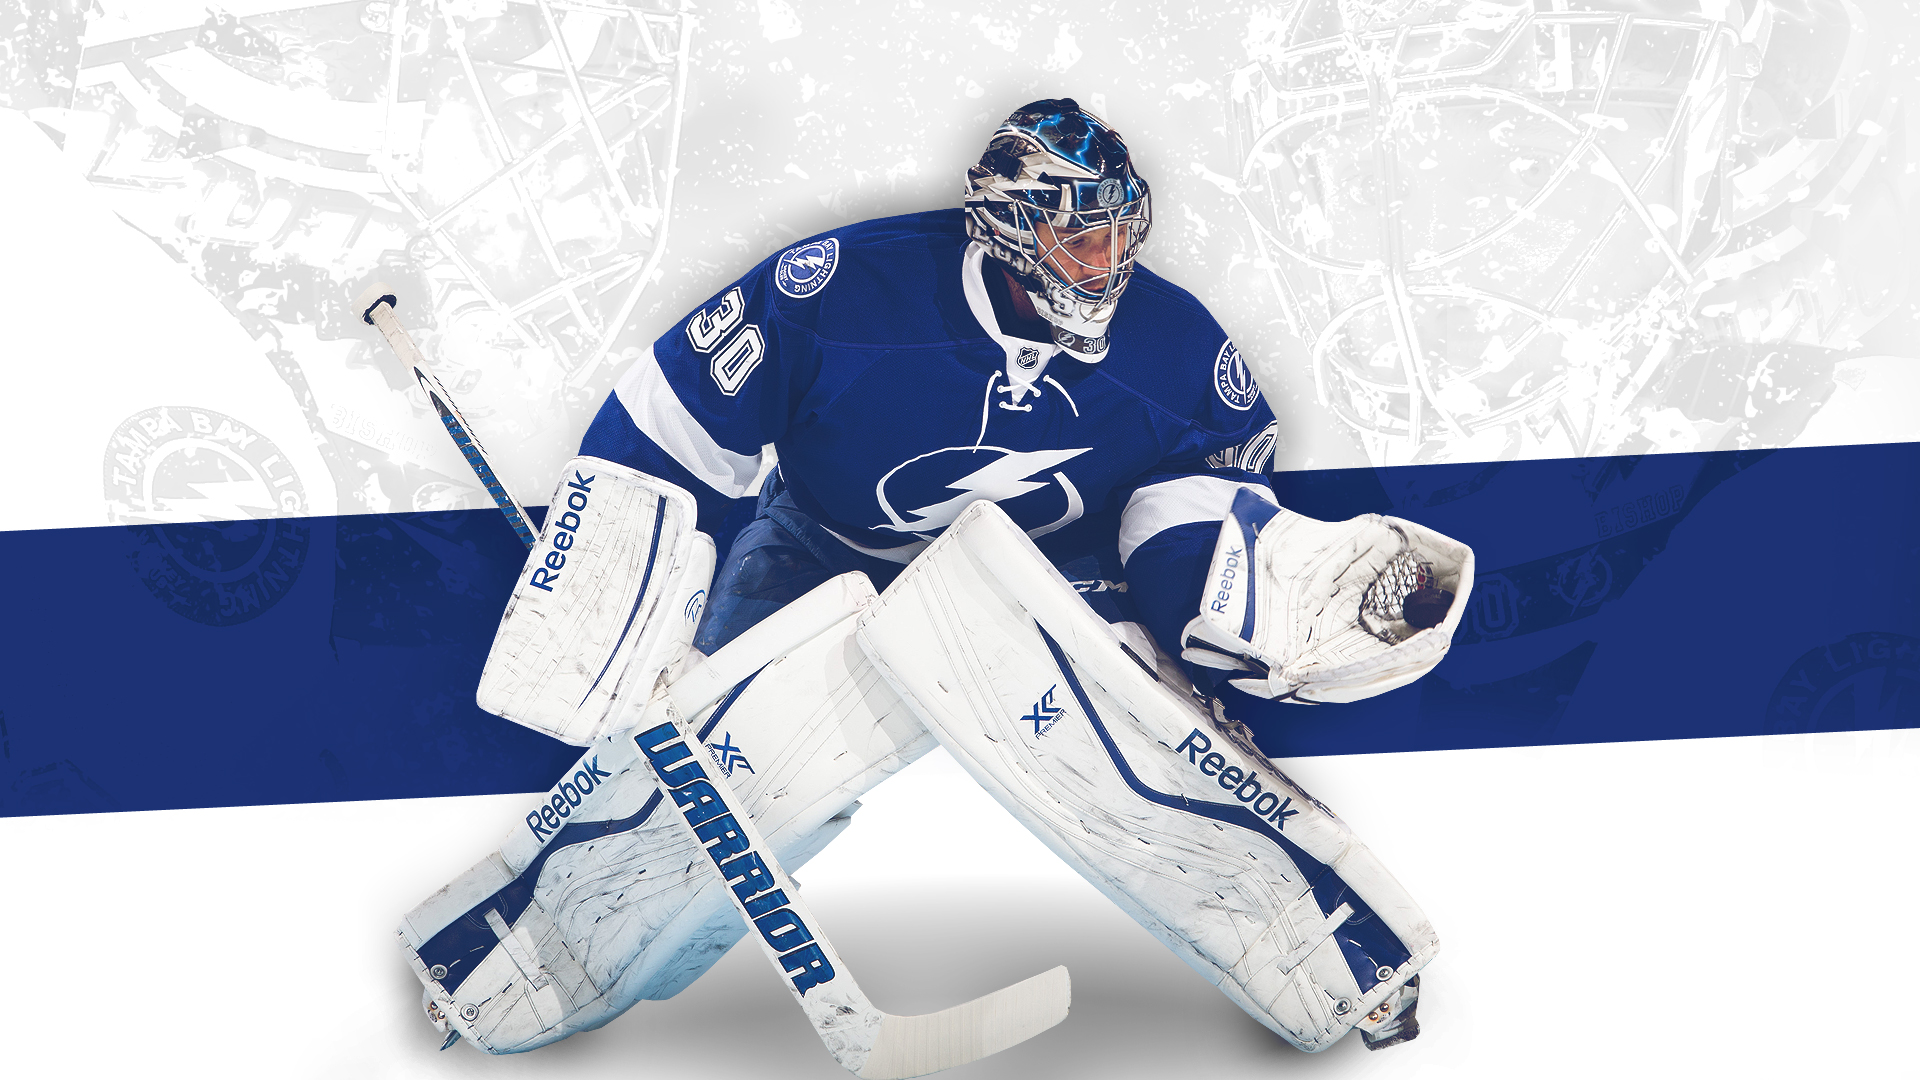 desktop wallpaper featuring Tampa Bay Lightning goaltender Ben 1920x1080